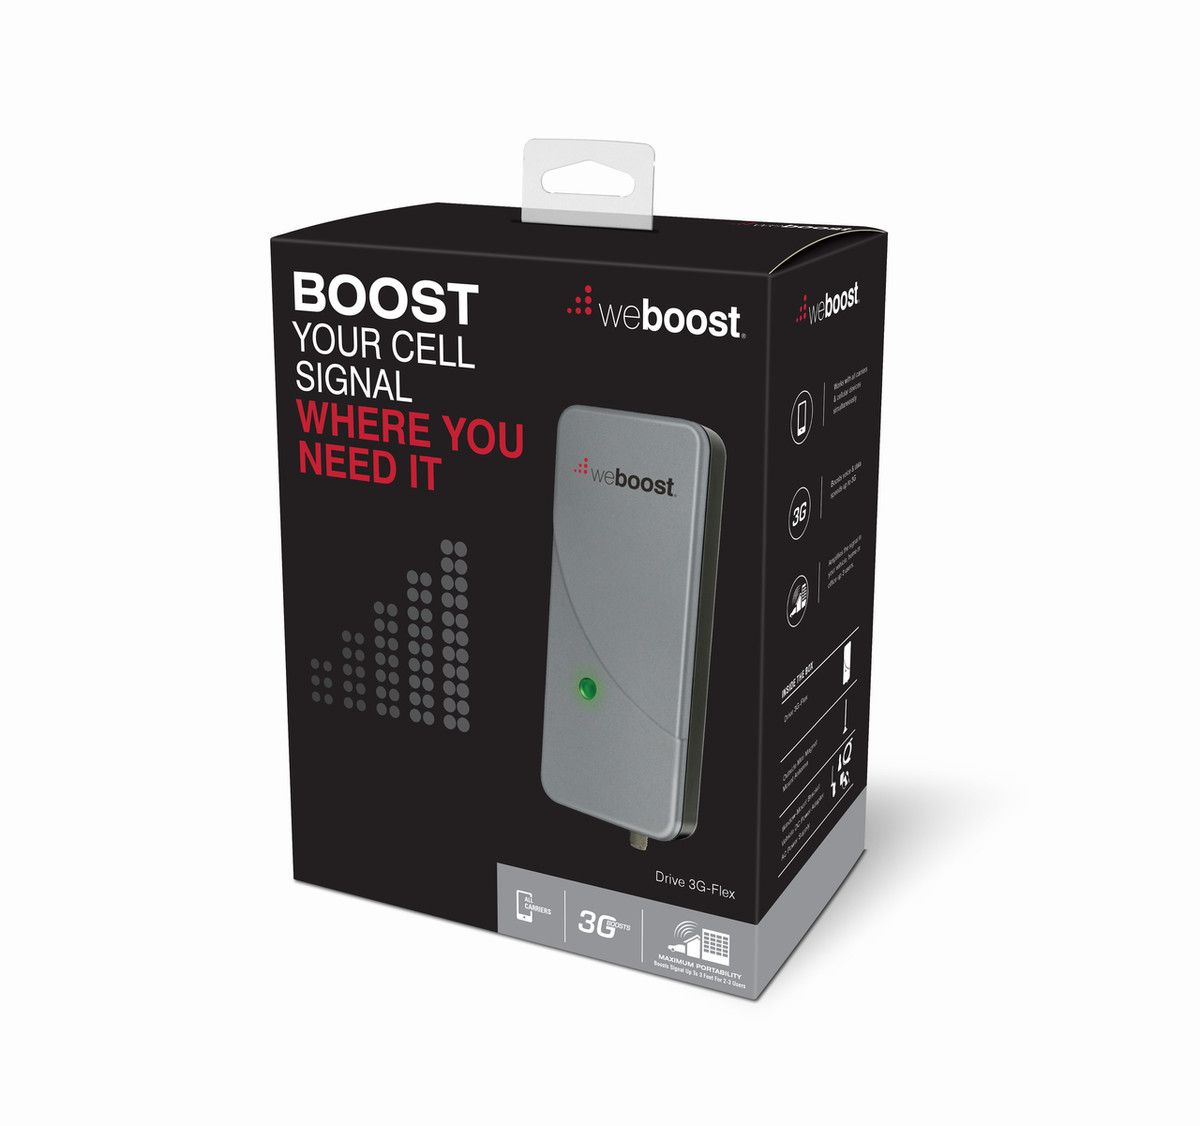 Wilson weBoost Drive 3G-Flex Cell Phone Signal Booster, Refurbished | 470113R